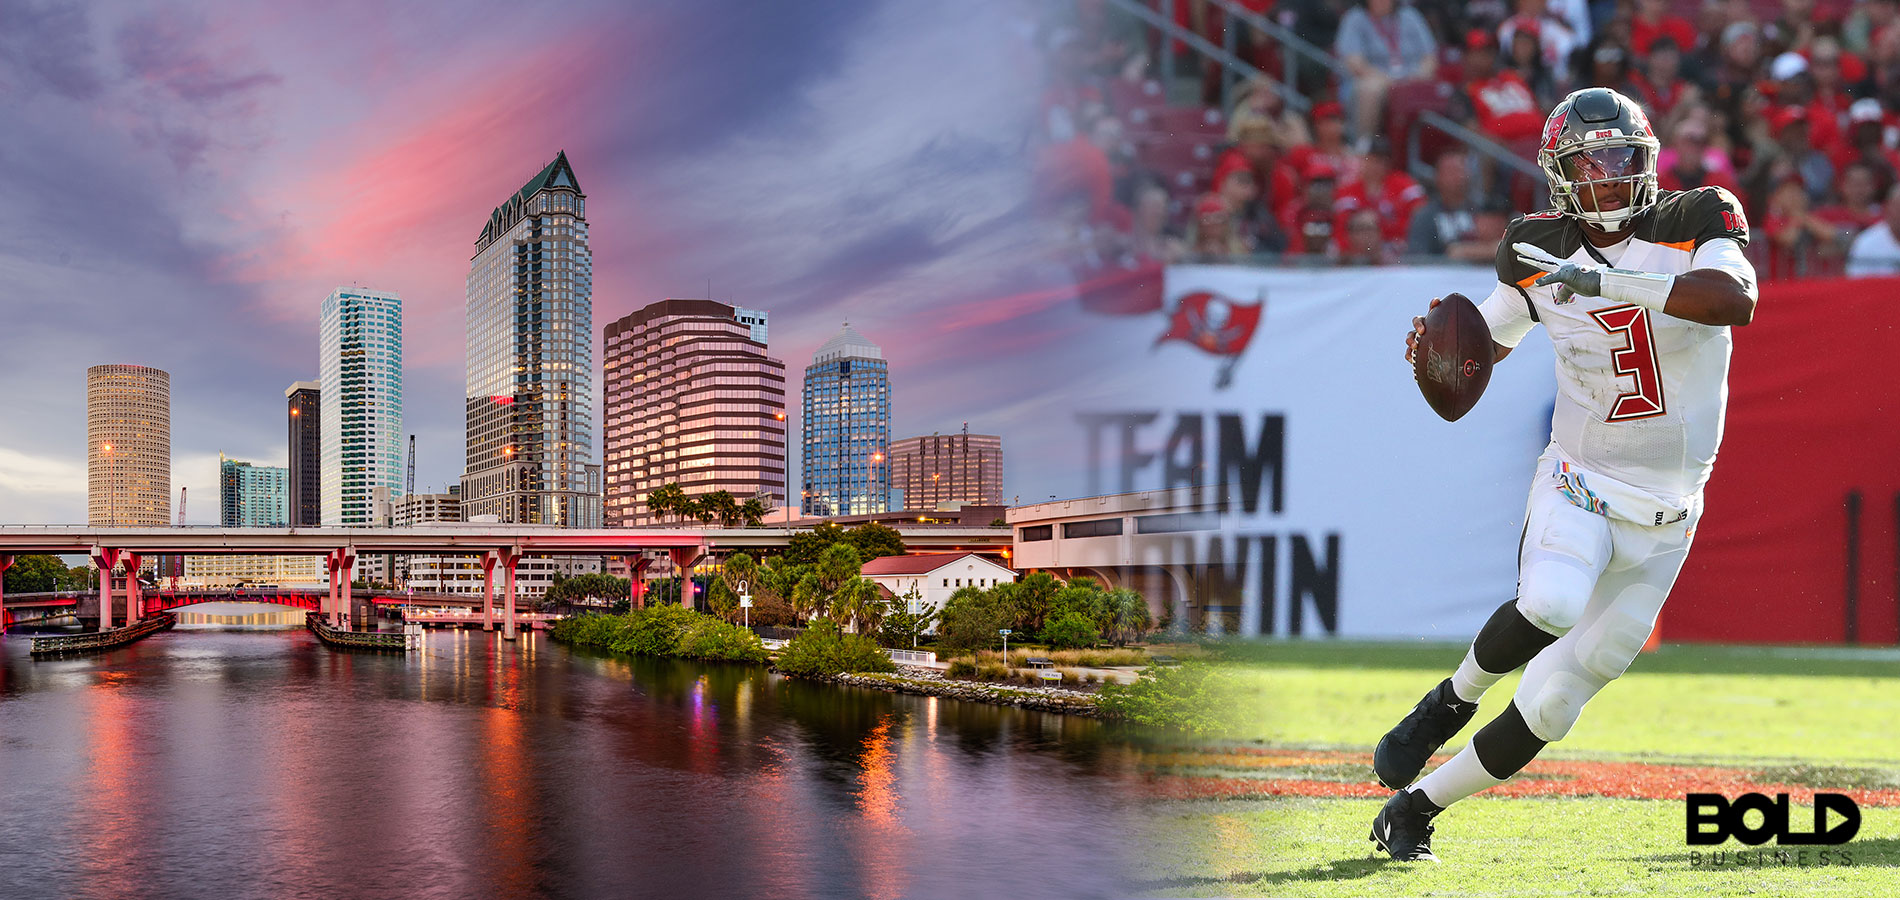 The Tampa skyline while the Bucs play